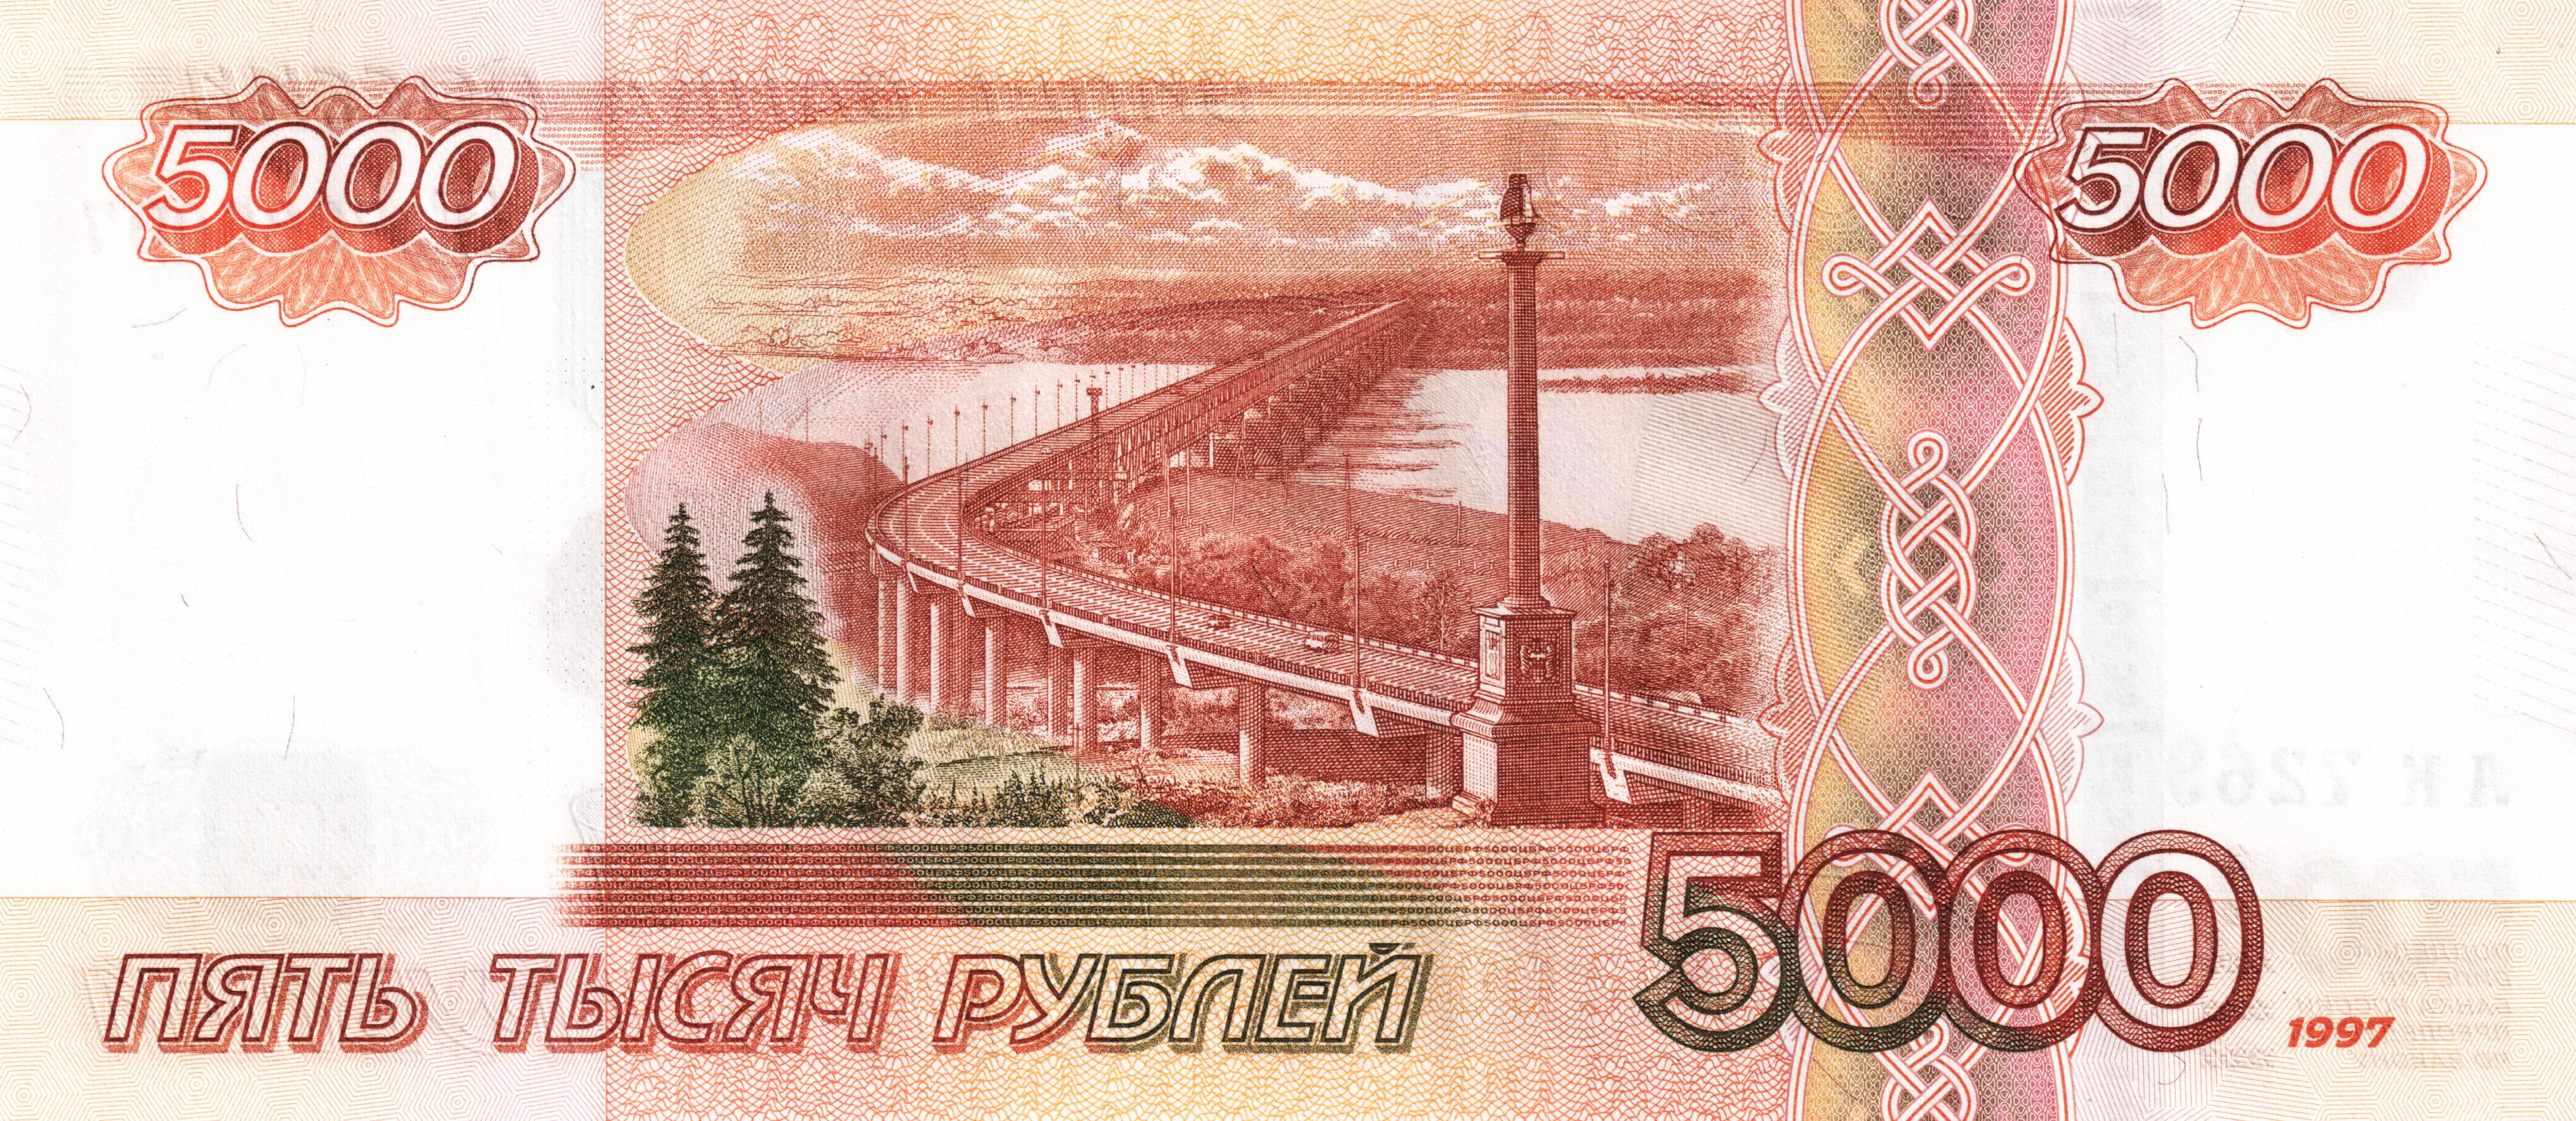 http://upload.wikimedia.org/wikipedia/commons/0/0d/Banknote_5000_rubles_2010_back.jpg